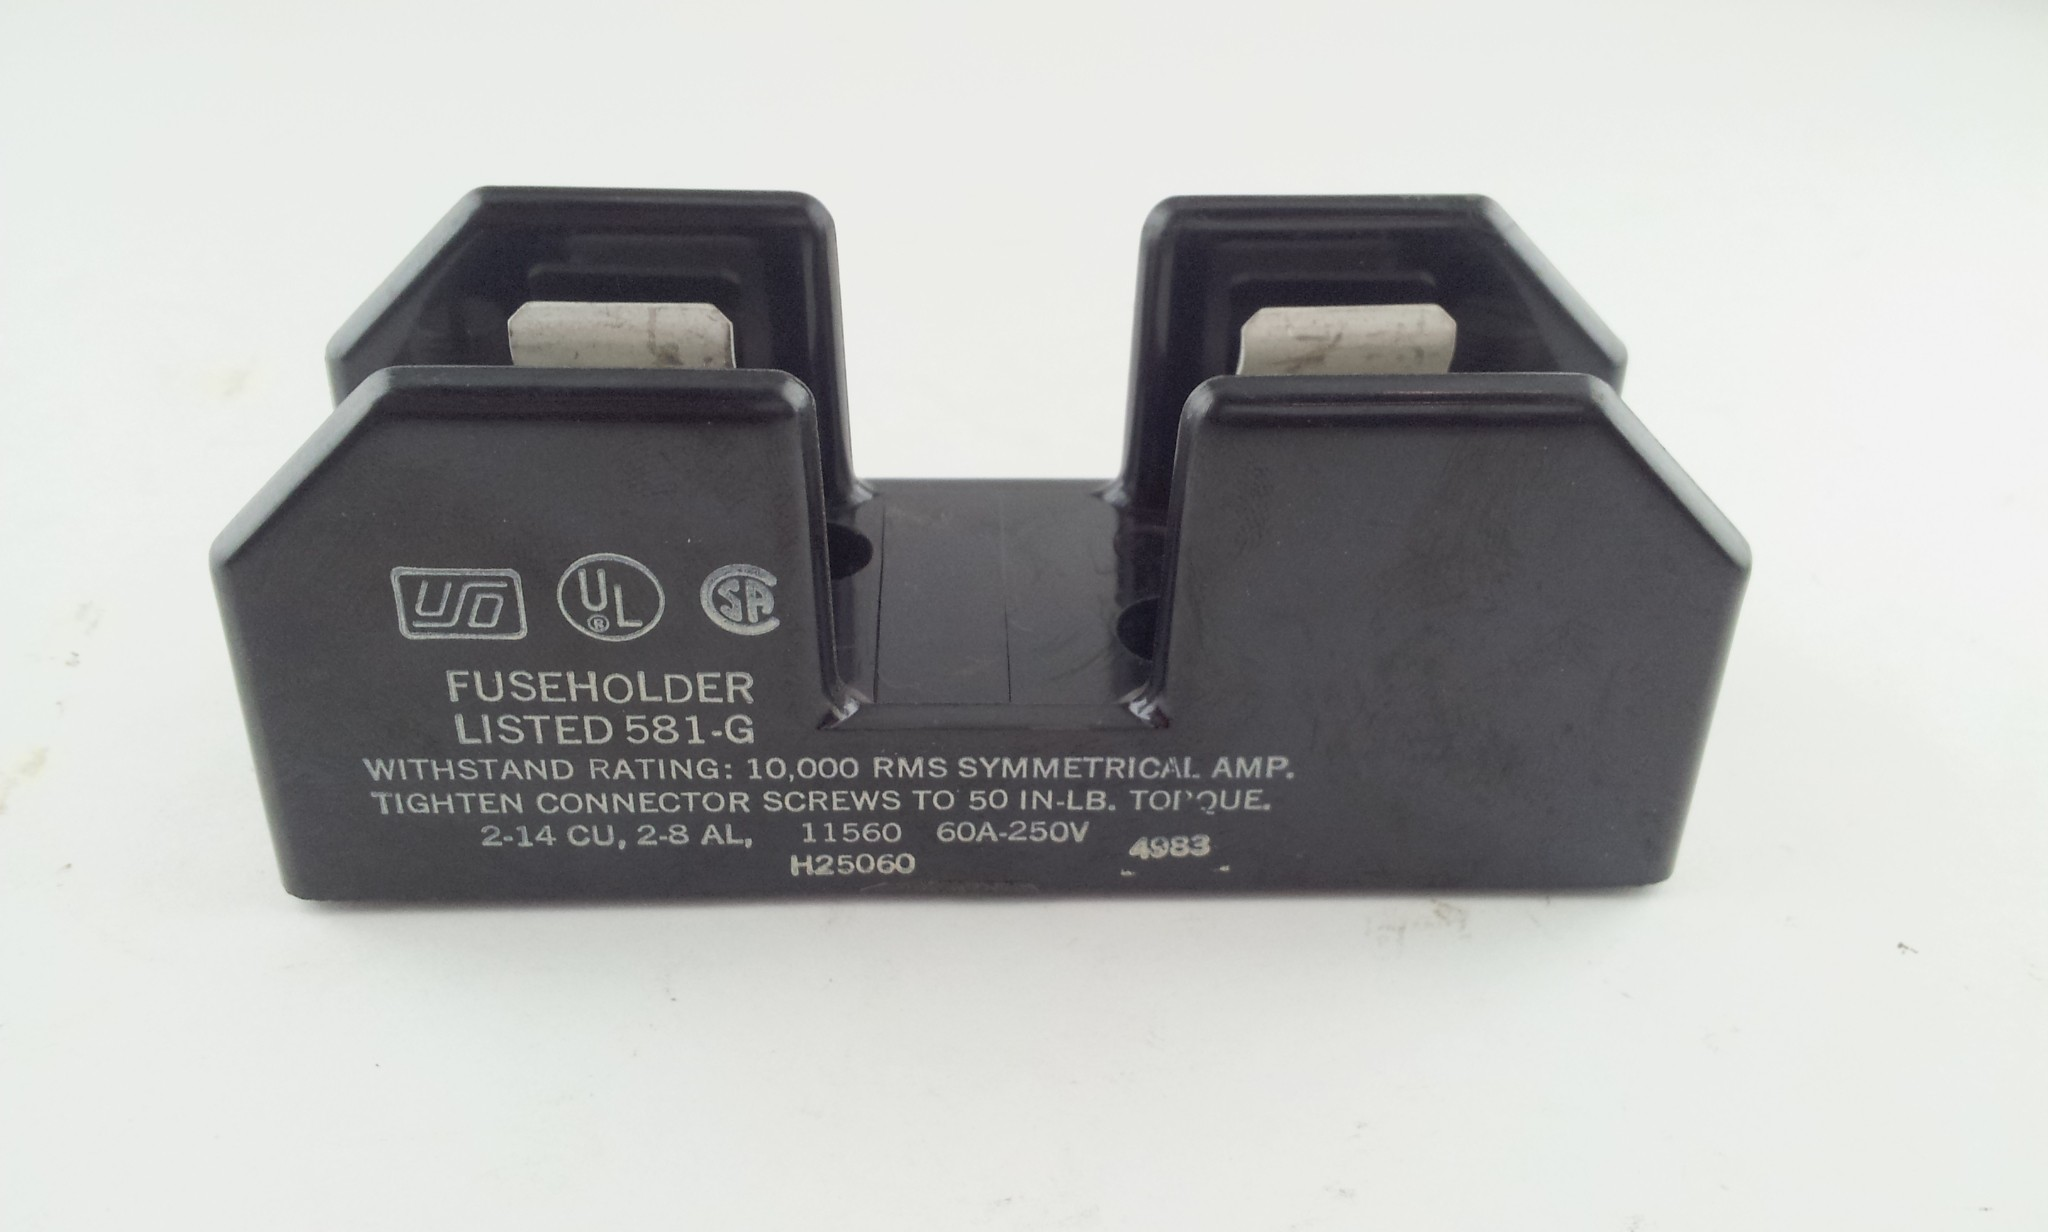 USD H25060 Fuse Holder 60 Amp 250V Single Pole 581-G